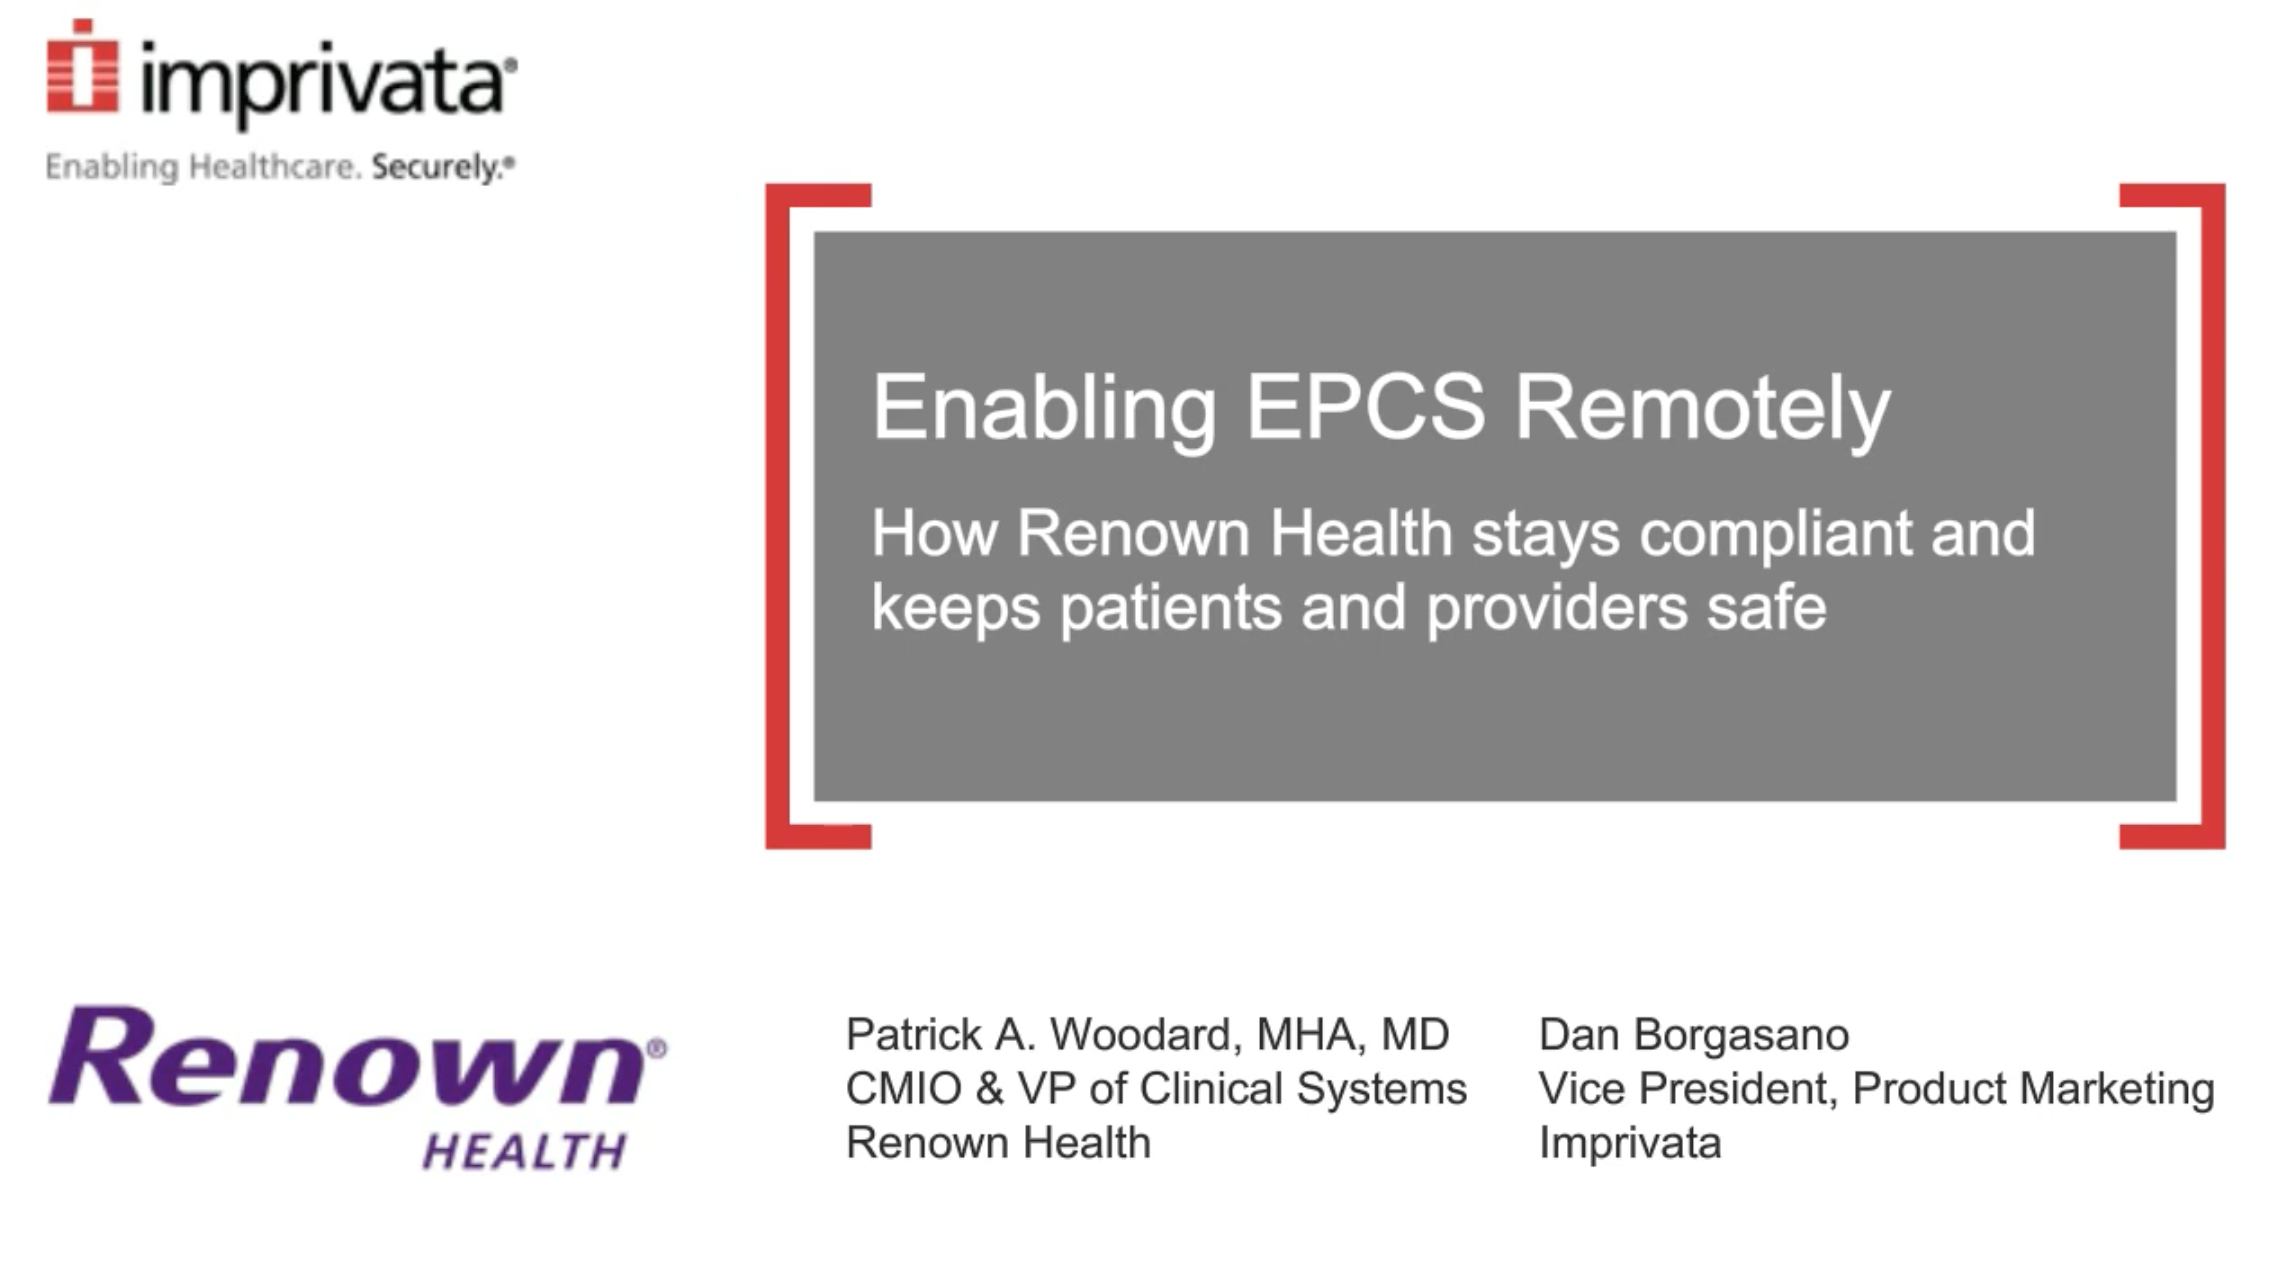 Enabling EPCS remotely: How Renown Health stays compliant and keeps patients and providers safe